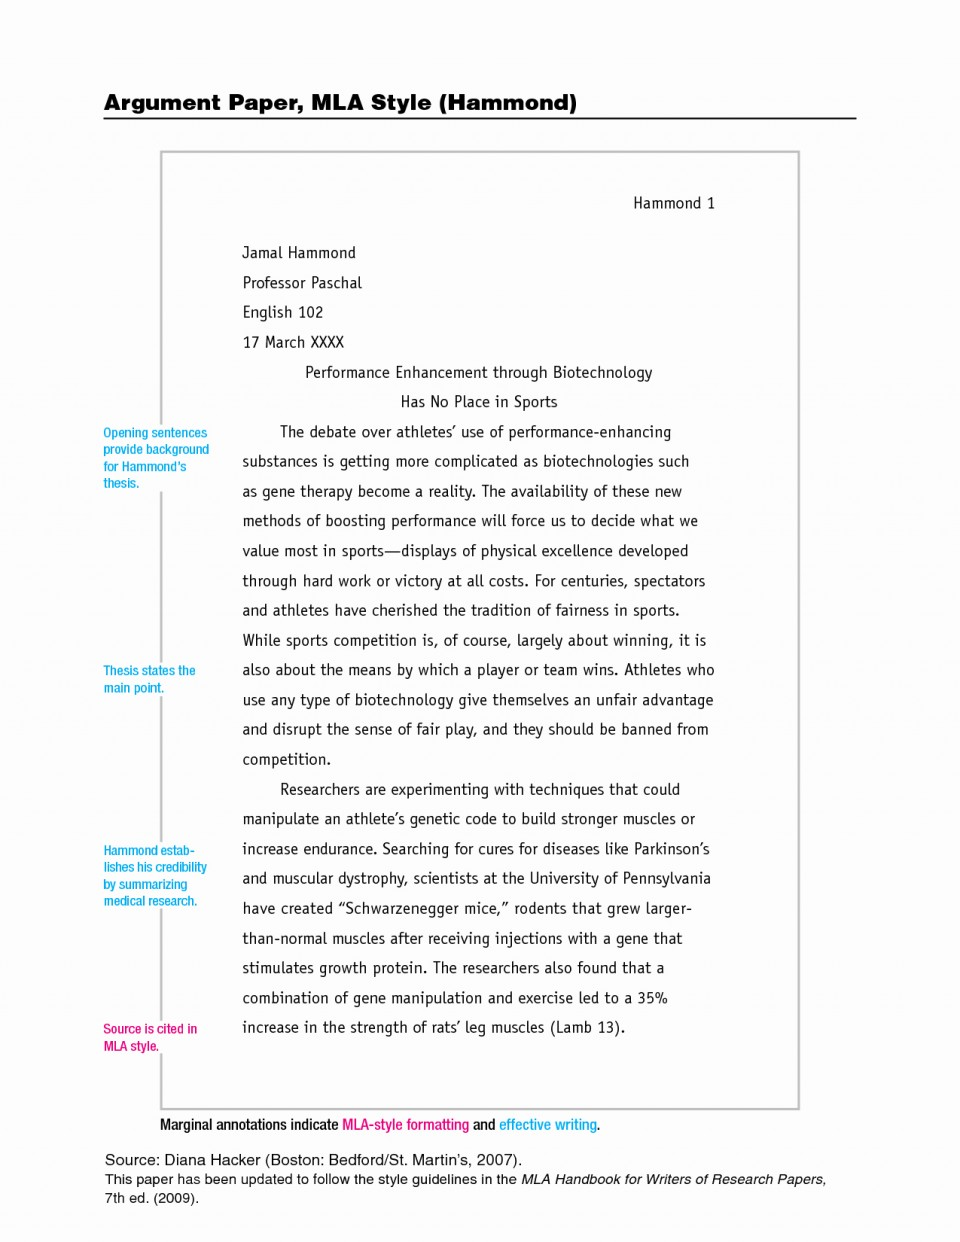 005 Research Paper Mla Style Format Best Of Sample Pages In Beautiful Order A Example Proposal Examples 960